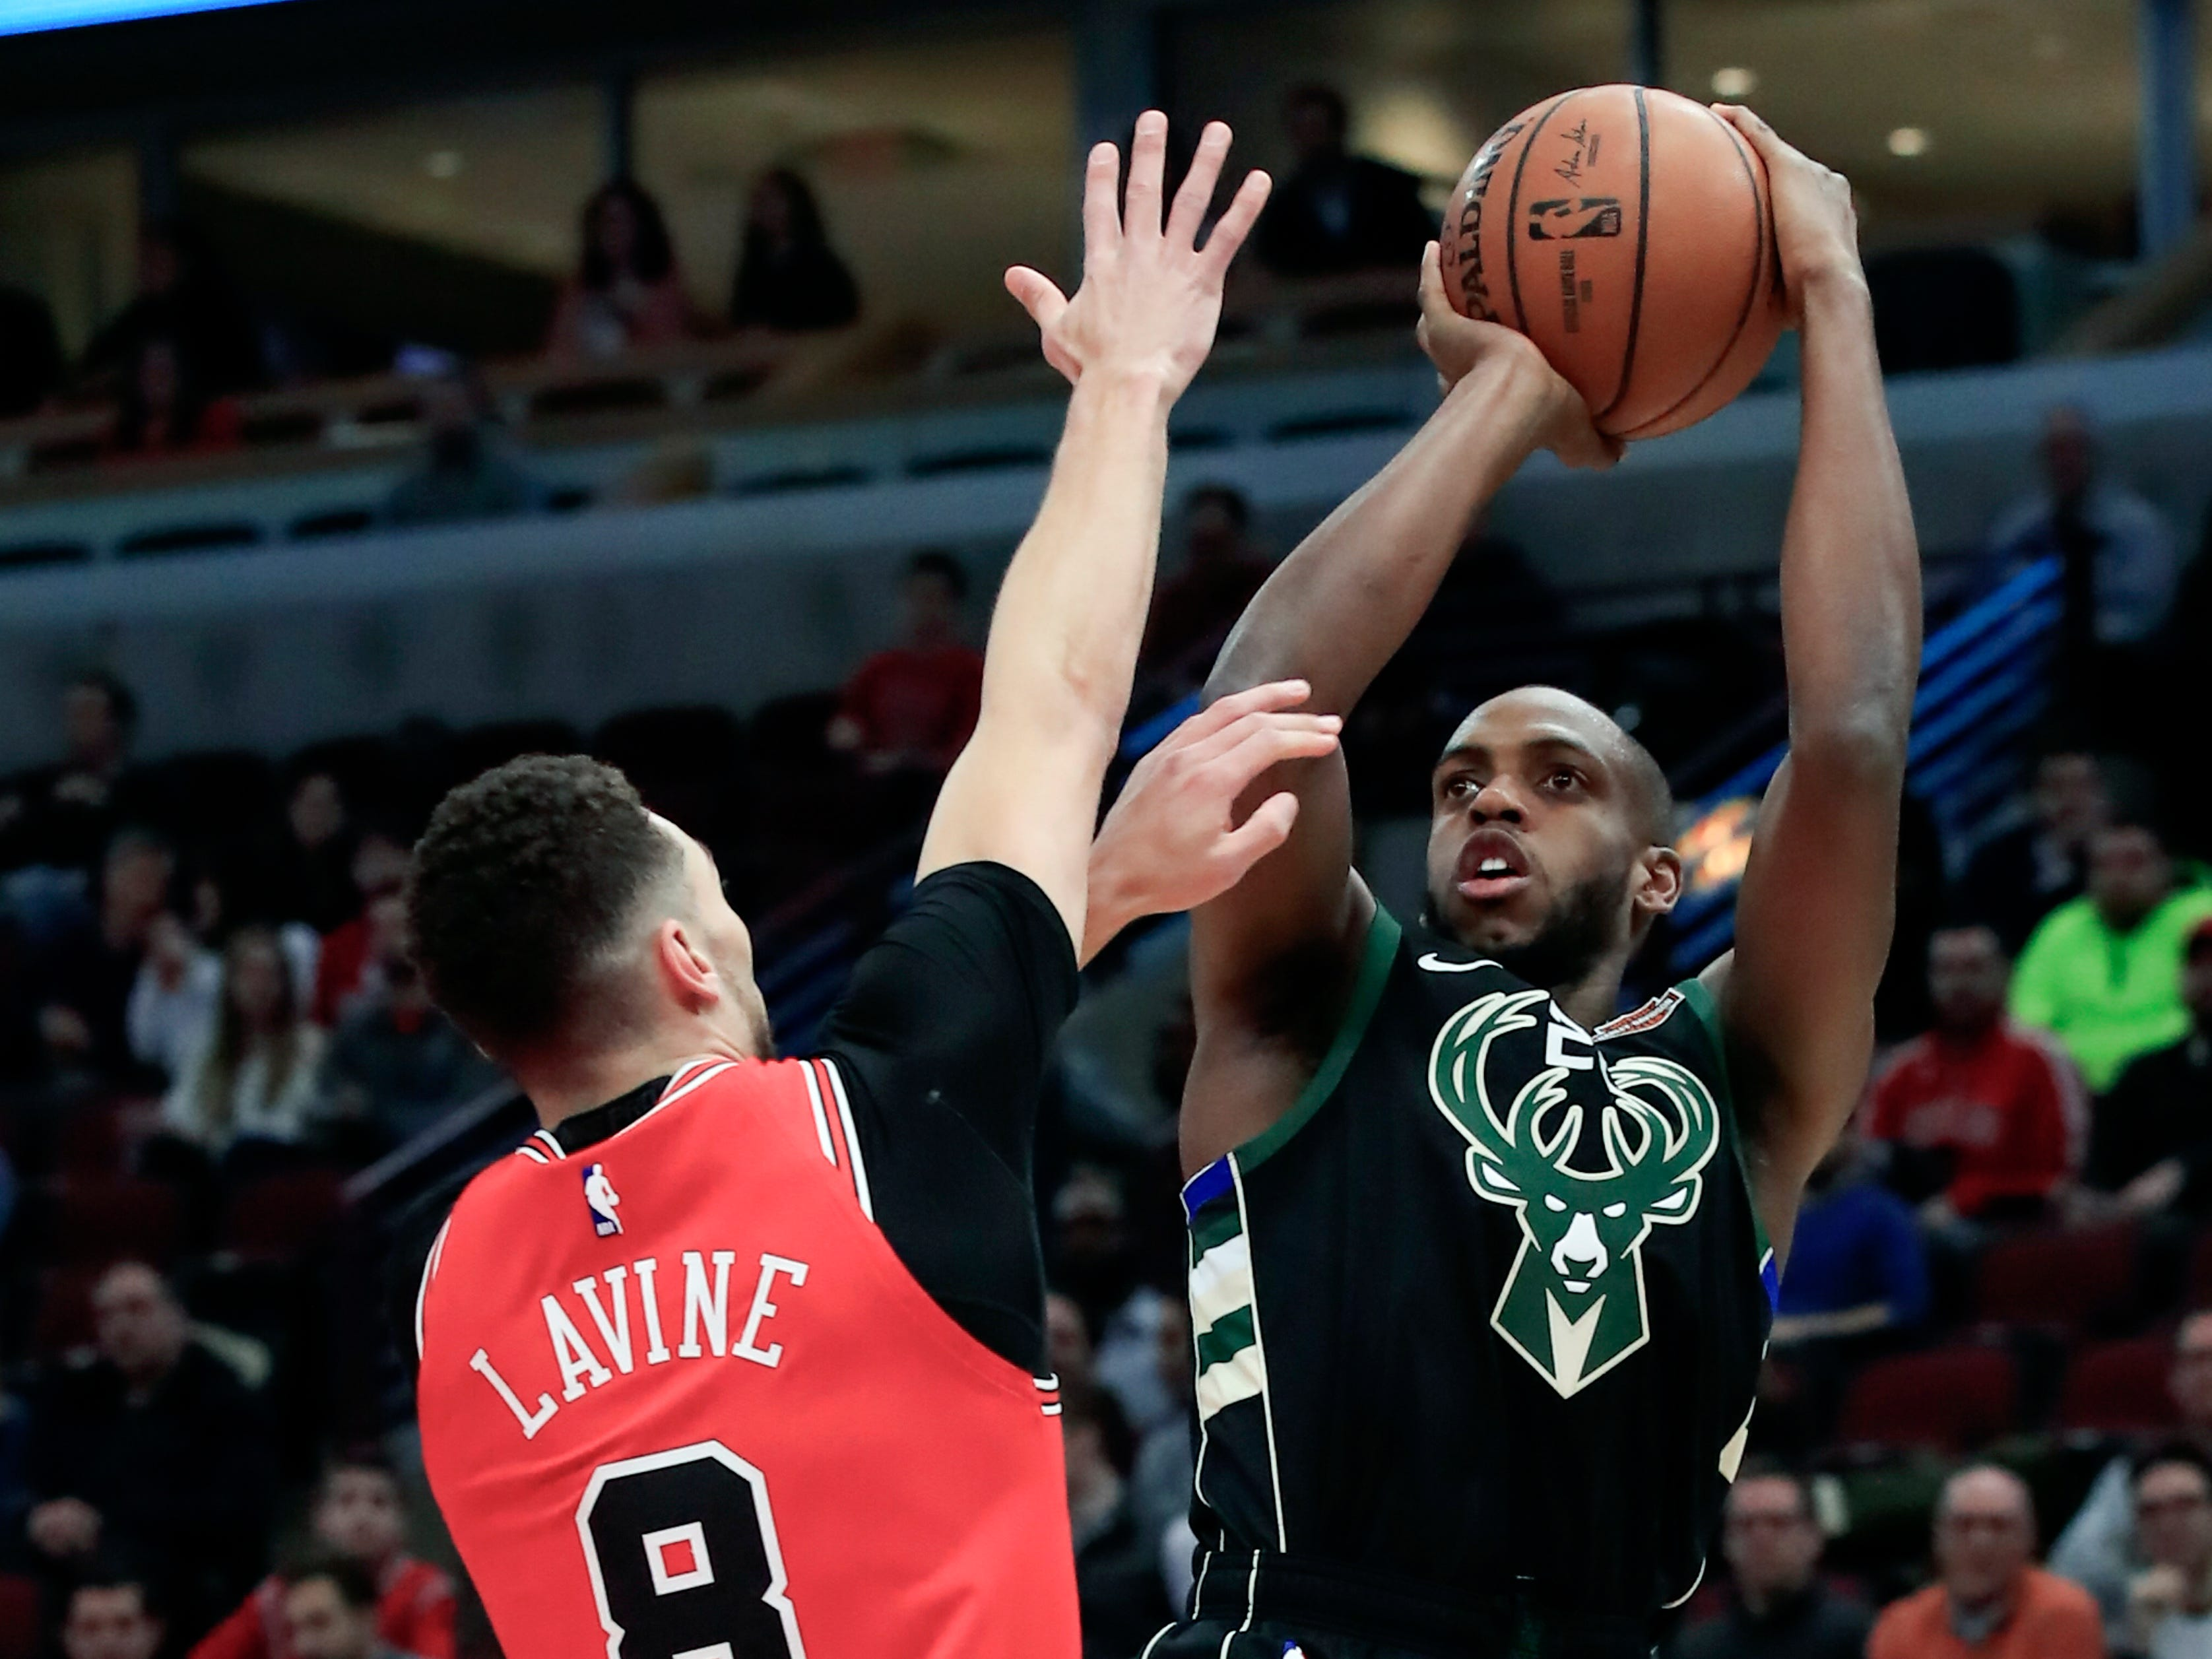 Bucks forward Khris Middleton gets ready to toss up a fadeaway jumper over Bulls guard Zach LaVine on Monday night.